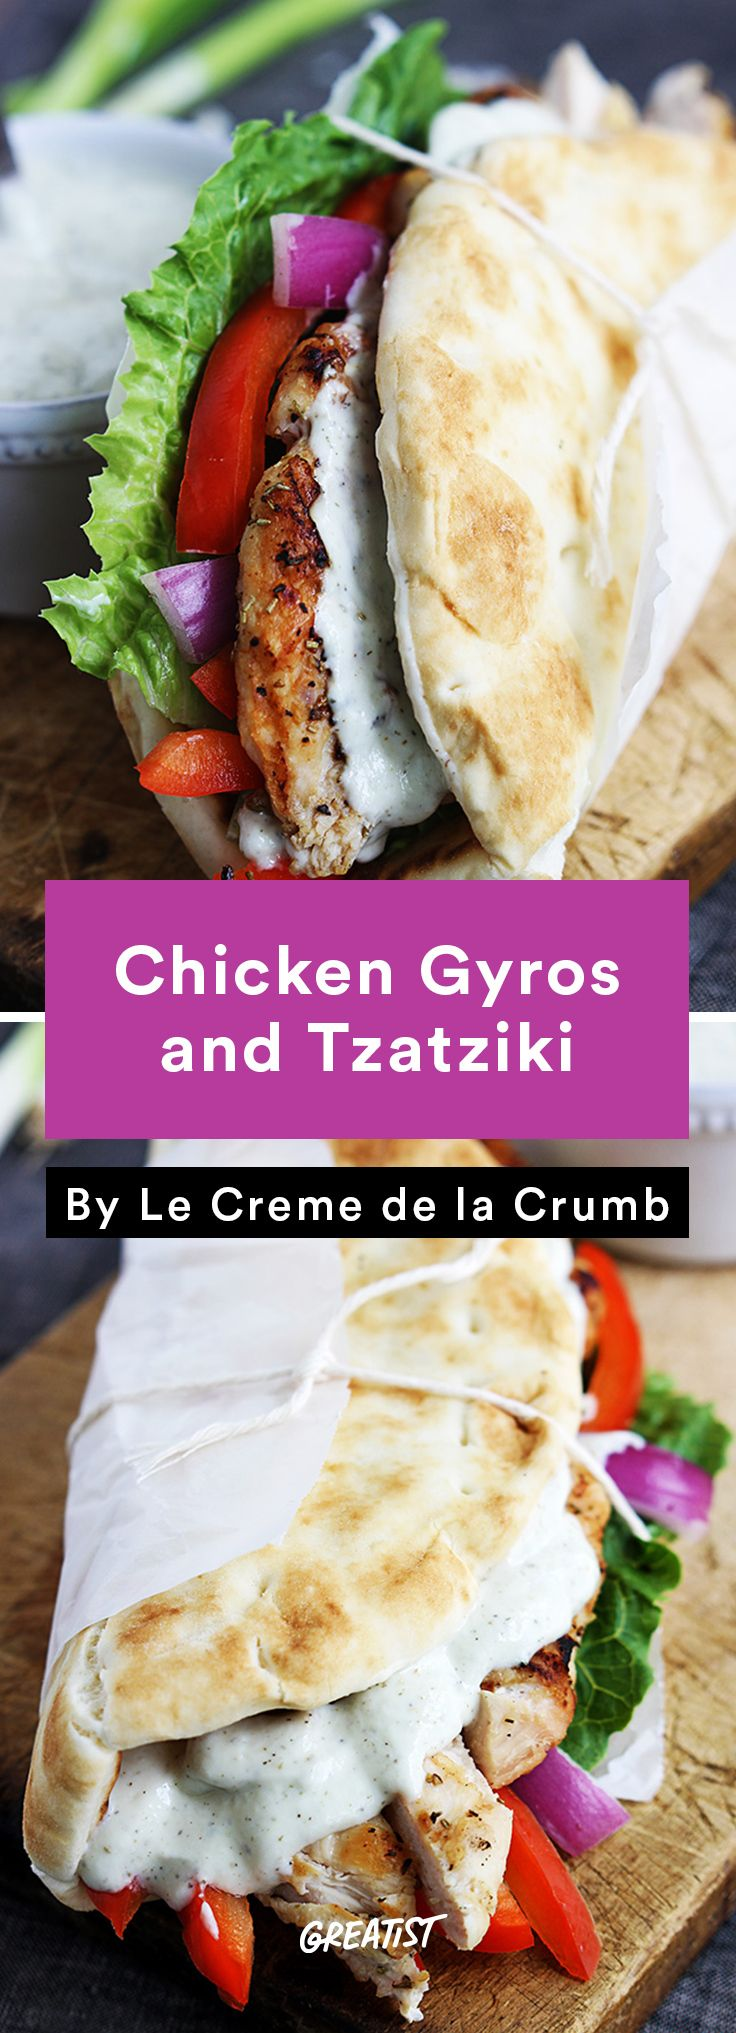 9 street food recipes for when theres no truck in sight chicken 9 street food recipes for when theres no truck in sight forumfinder Gallery